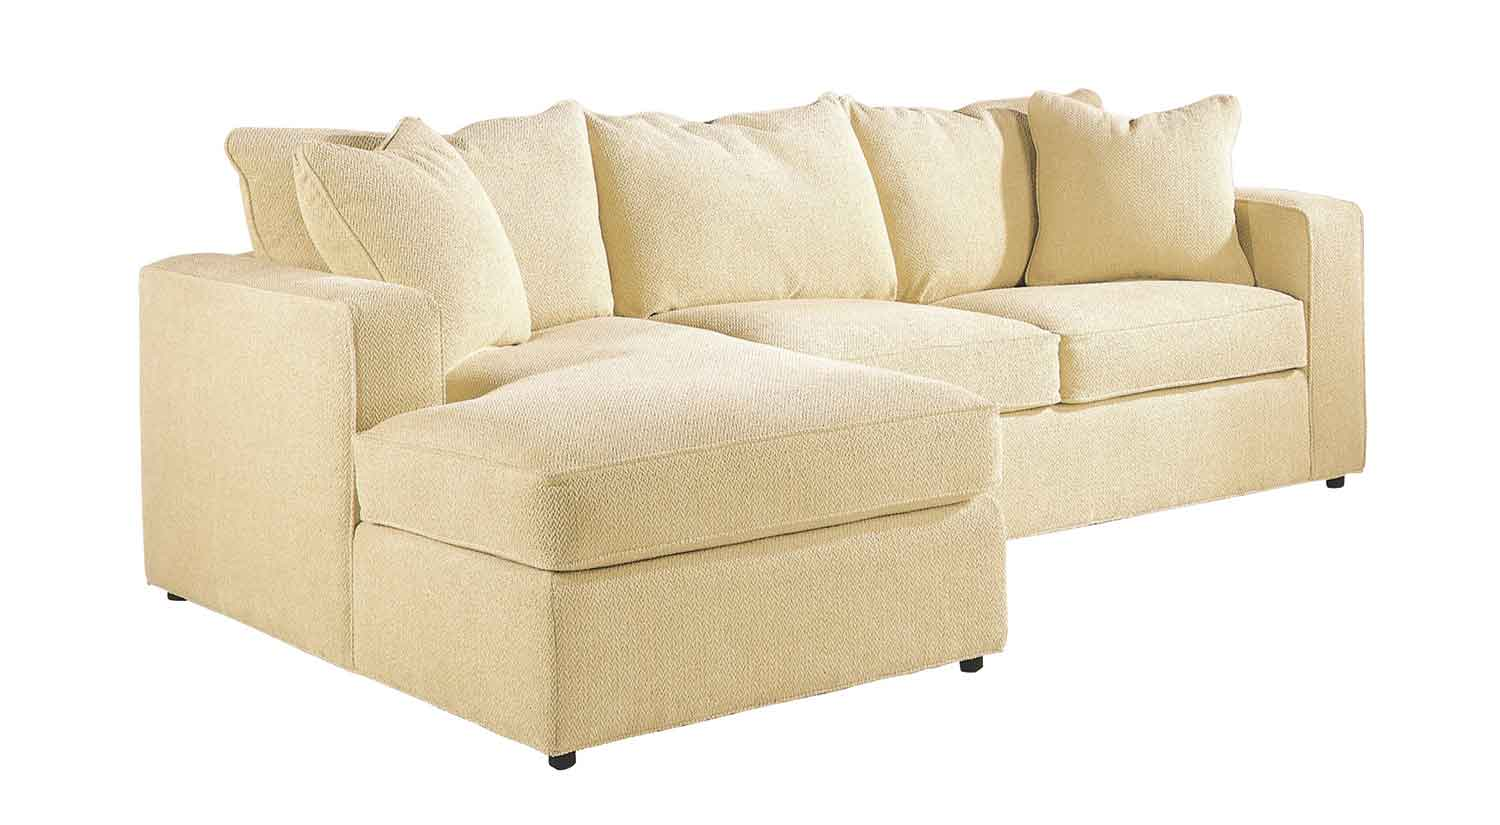 Circle Furniture Milford Chaise Sectional Chaise Sofa Acton Circle Furniture